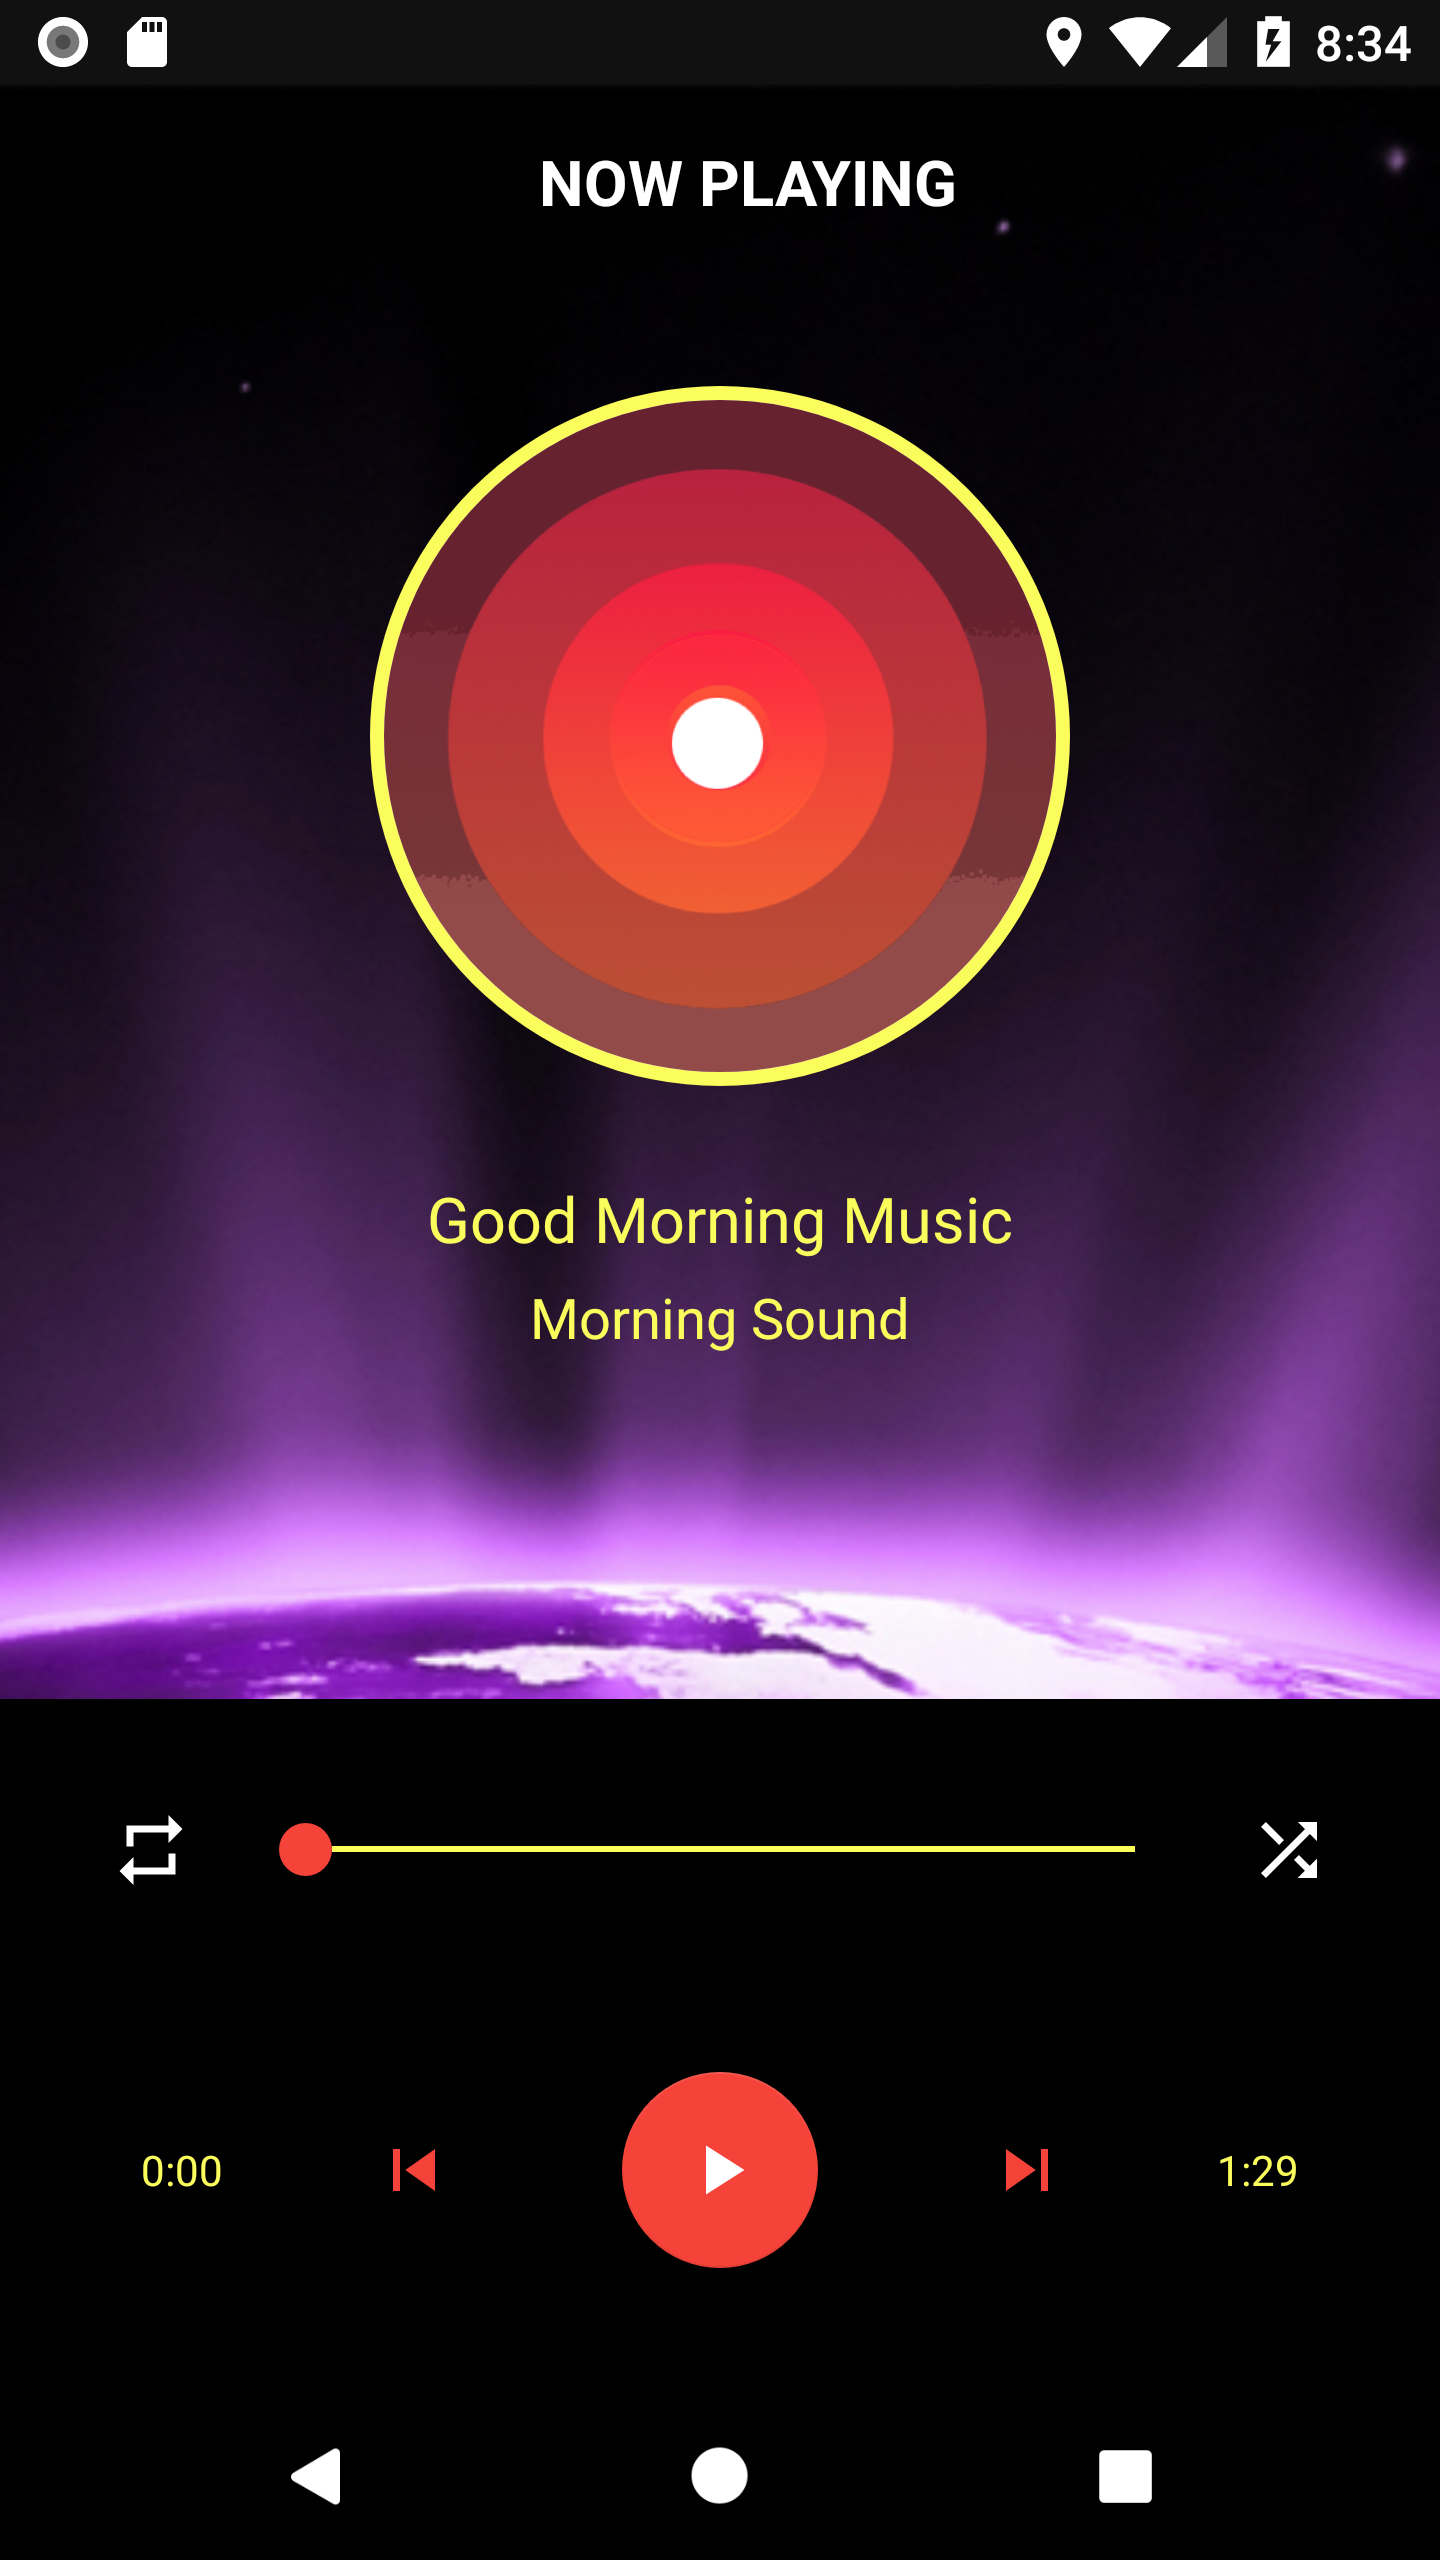 Android Music Player Music player design, Music player